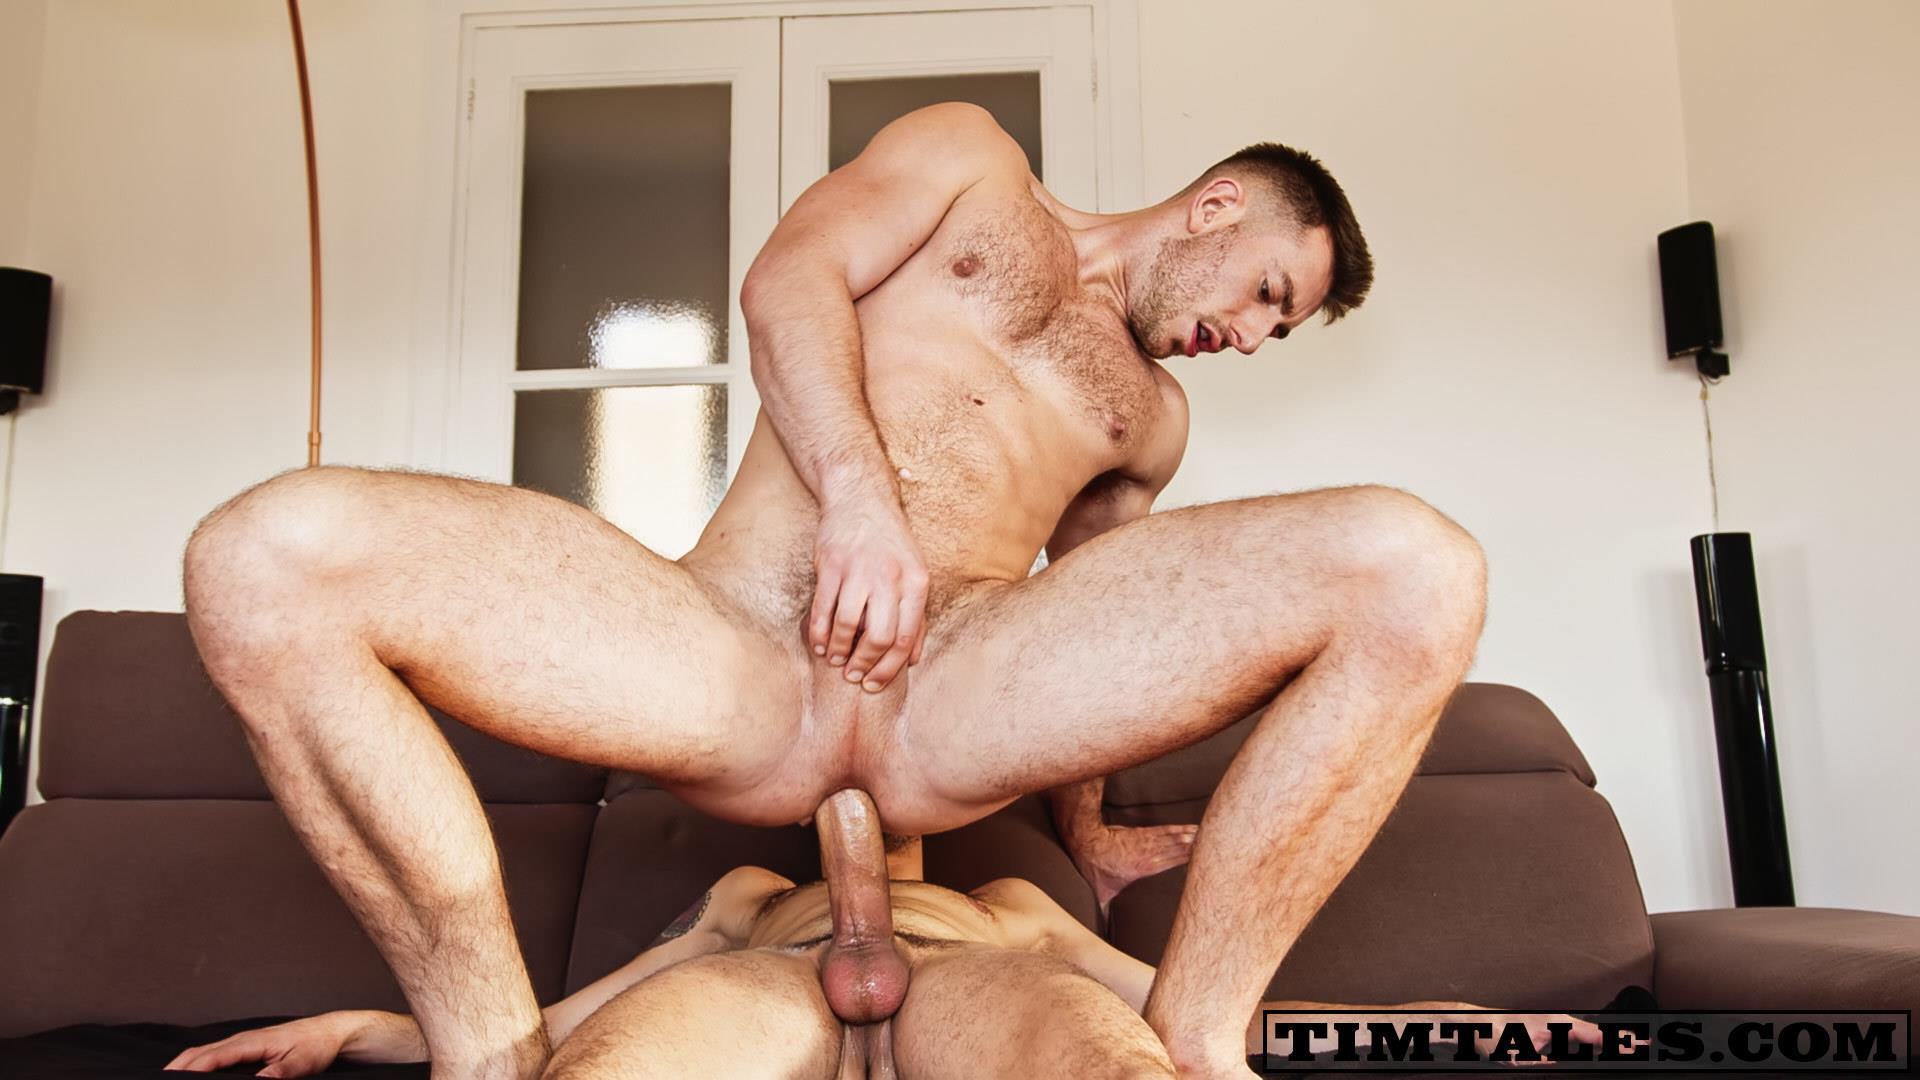 TimTales-Koldo-and-John-Thomas-Big-Uncut-Cocks-Bareback-Fucking-Free-Download-19 TimTales: Koldo Raw Fucks John Thomas With His Big Uncut Cock